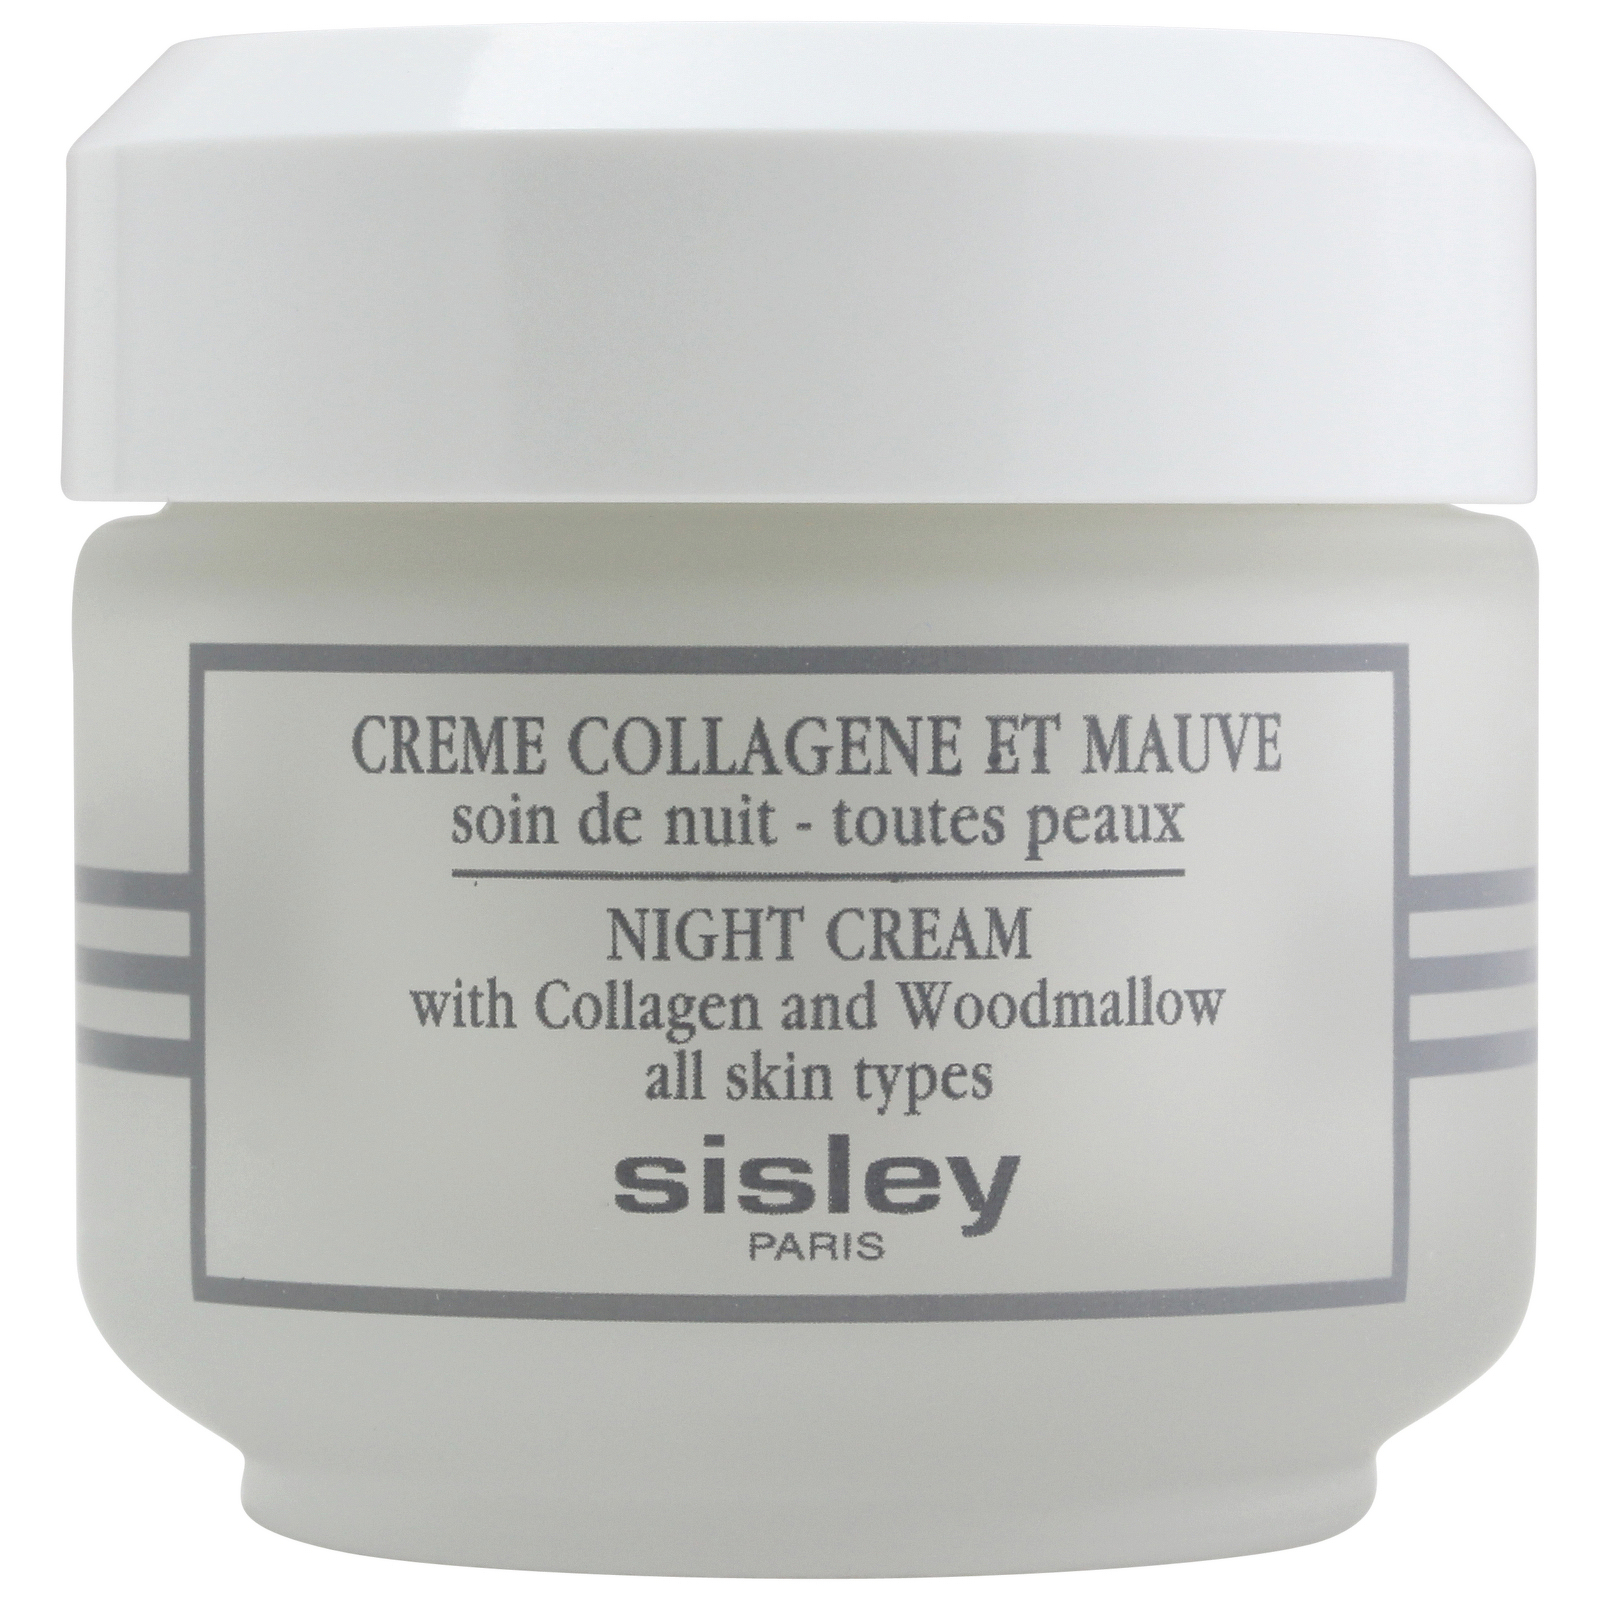 Sisley Anti-Aging Care Botanical Night Cream with Collagen & Woodmallow 50ml